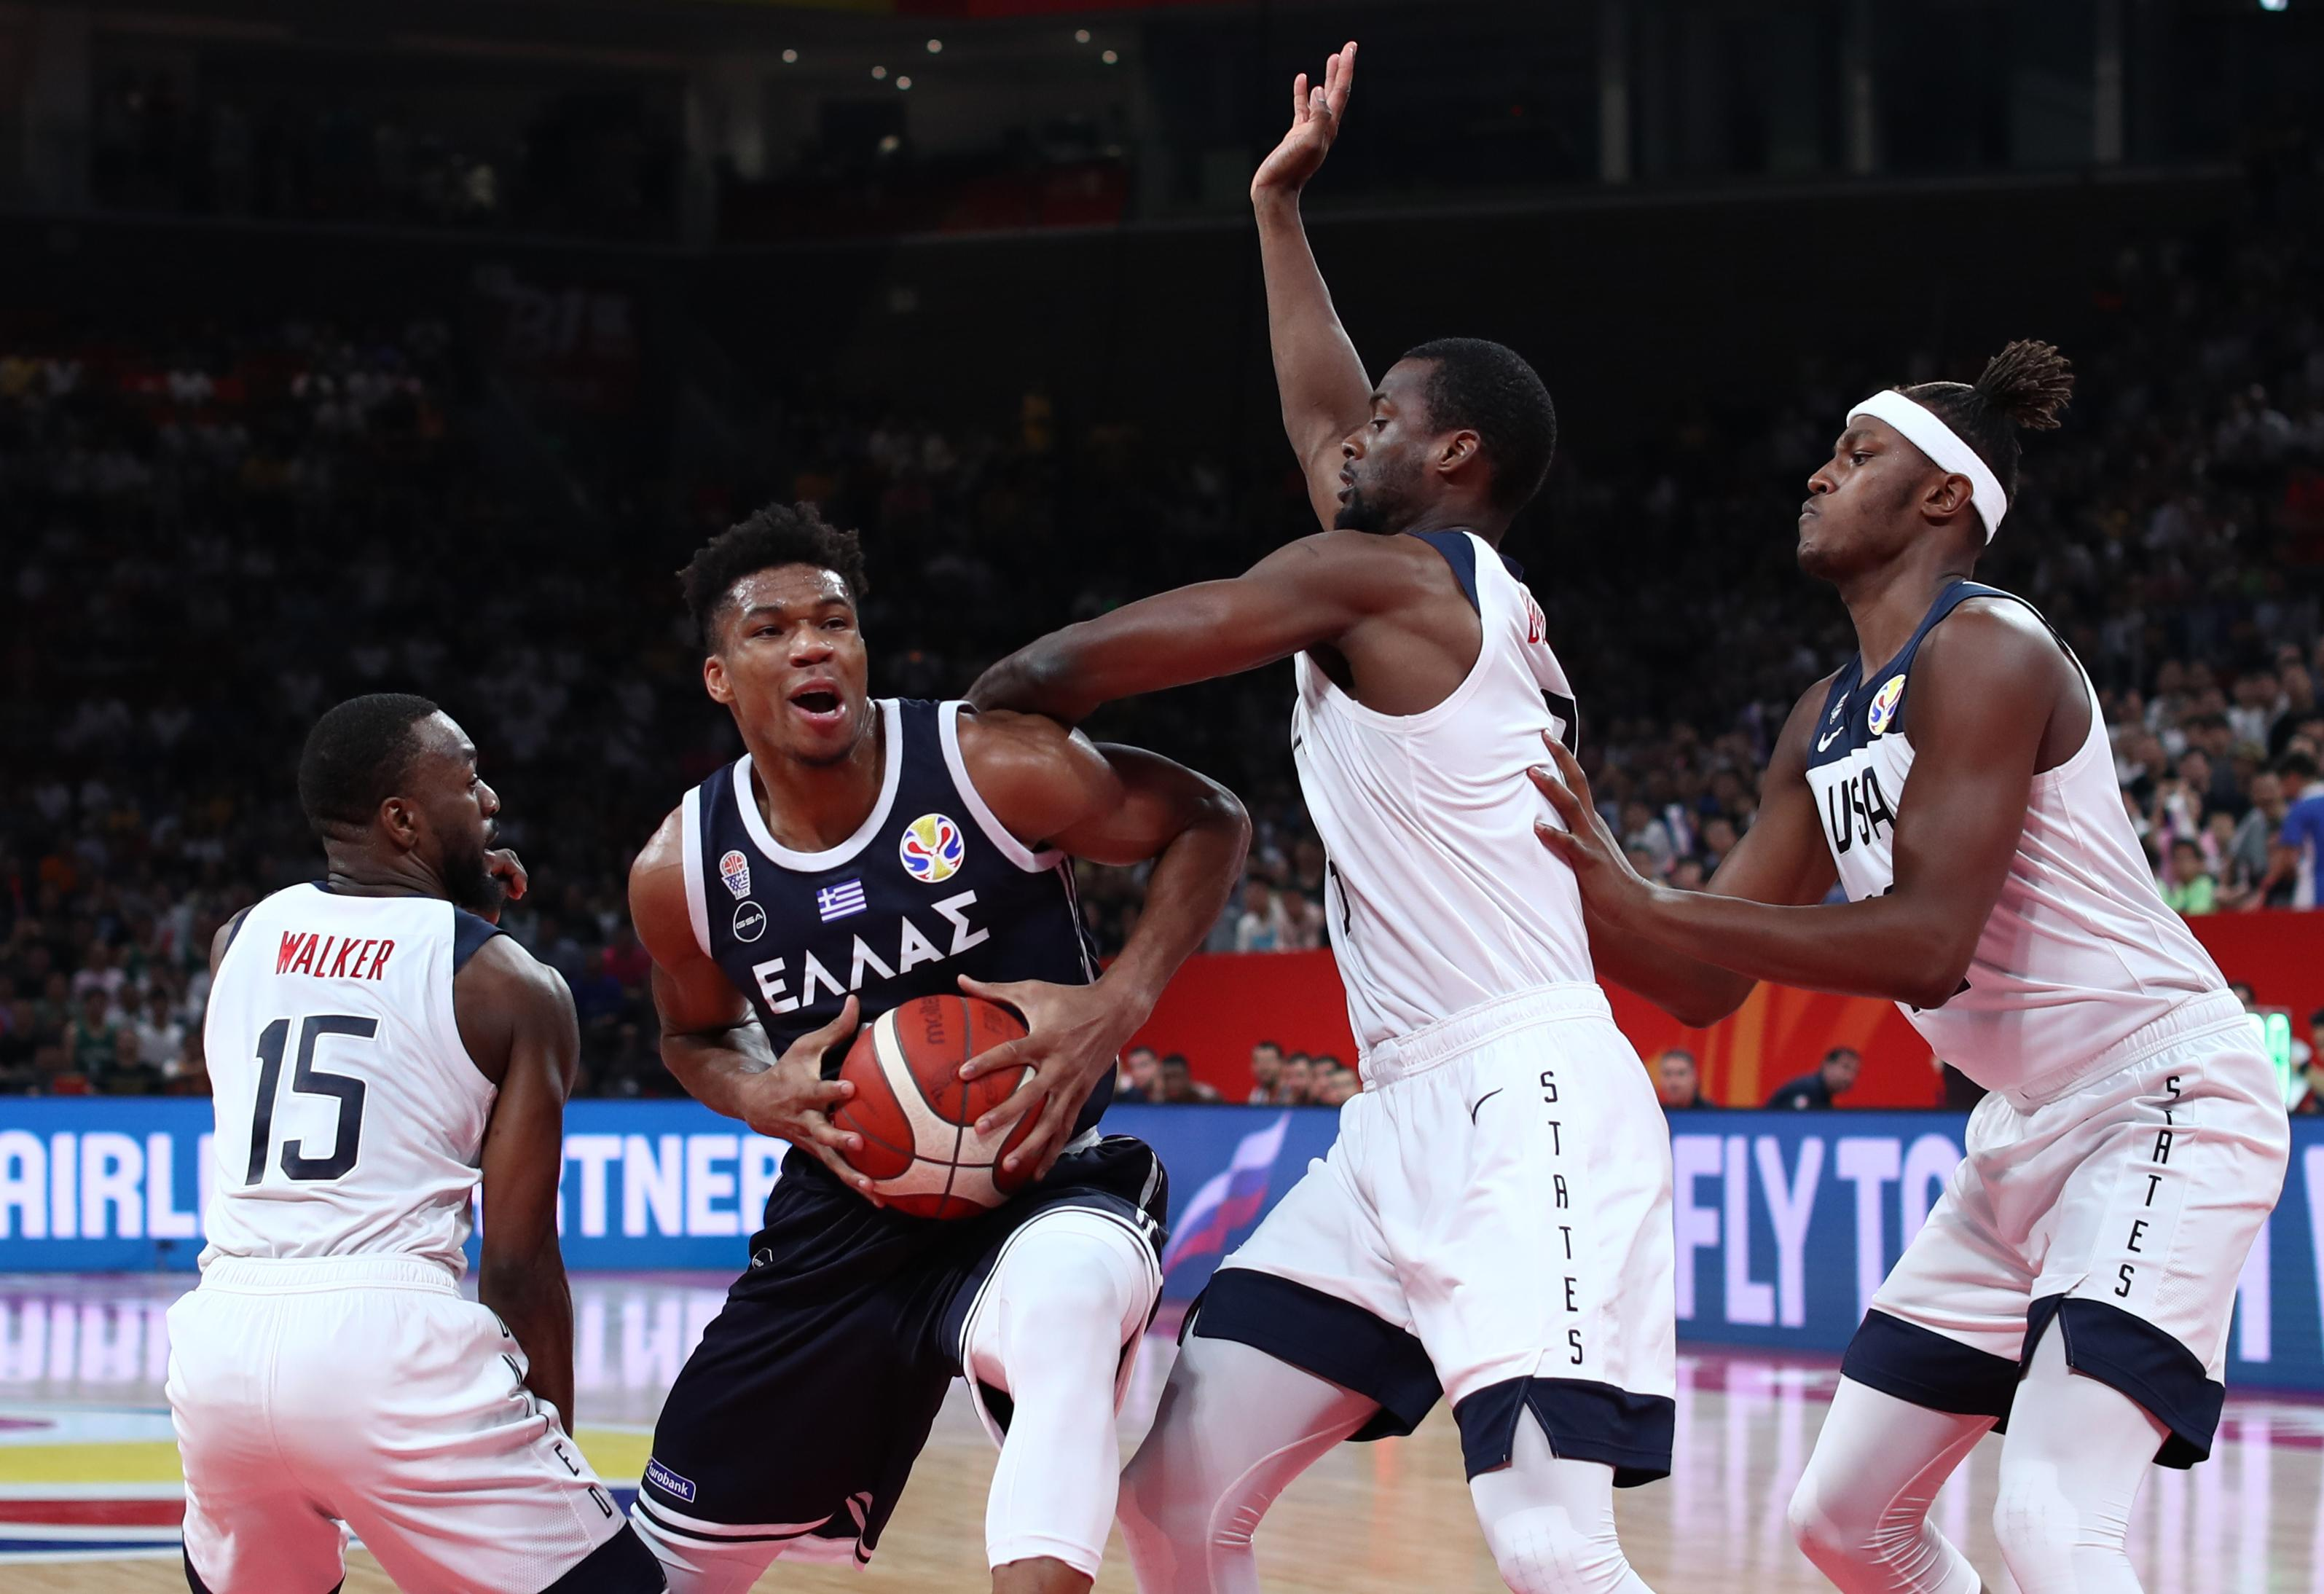 2019 FIBA World Cup: Tempers flare after Team USA rolls over Greece - Yahoo Sports